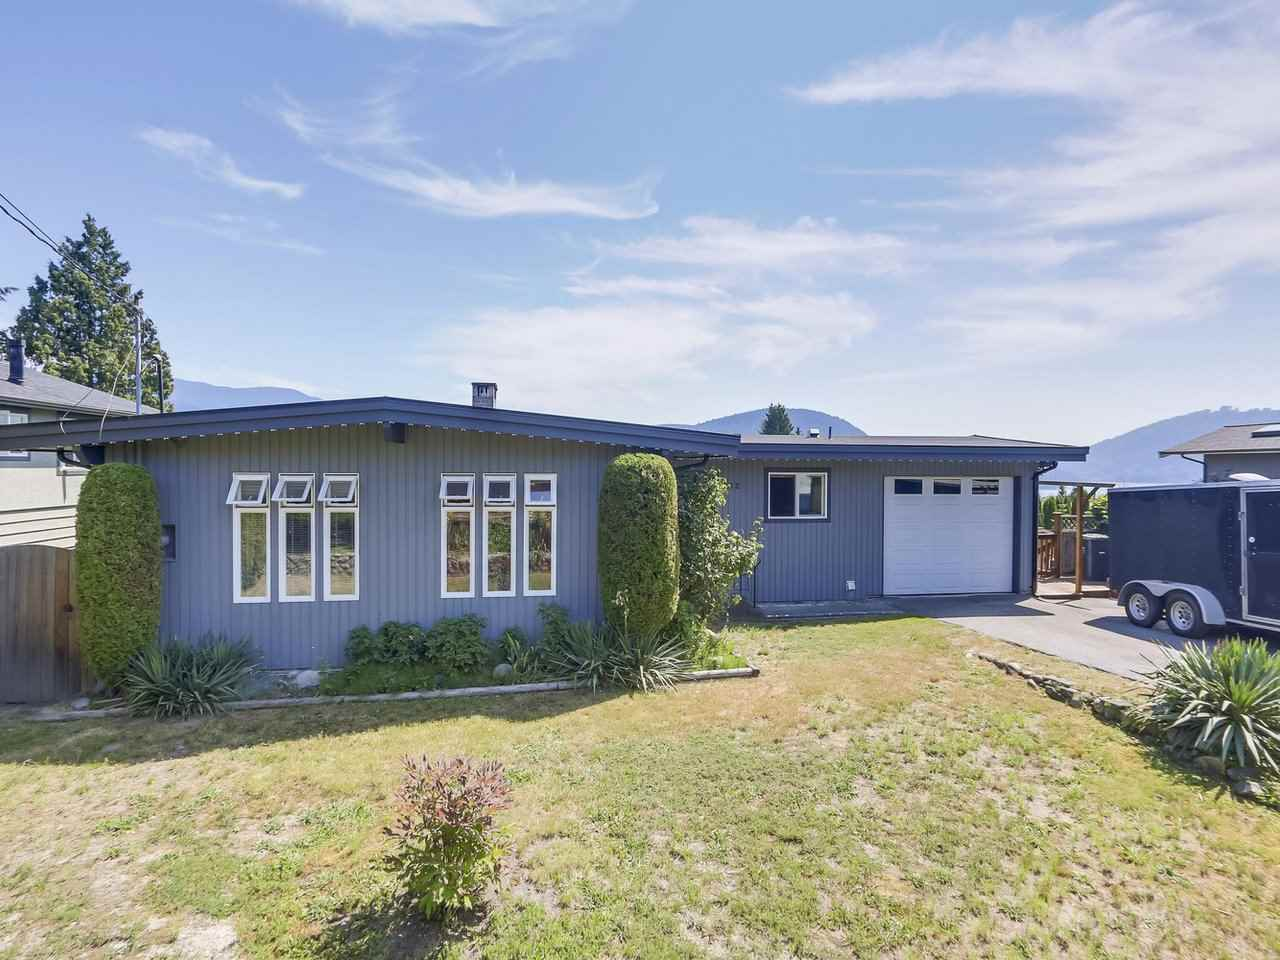 """EXTREMELY well maintained and renovated home on a very quiet street WITH WATER VIEWS of Indian Arm! The backyard is an oasis of privacy! Palm trees thrive here! Nothing to do but move in and enjoy the views! Steps to beaches, great schools, shops, golf courses, skiing.... downtown just a half hour away. A half block away is a great park for kids! No need for """"Jungle Jim's"""" in your backyard!"""